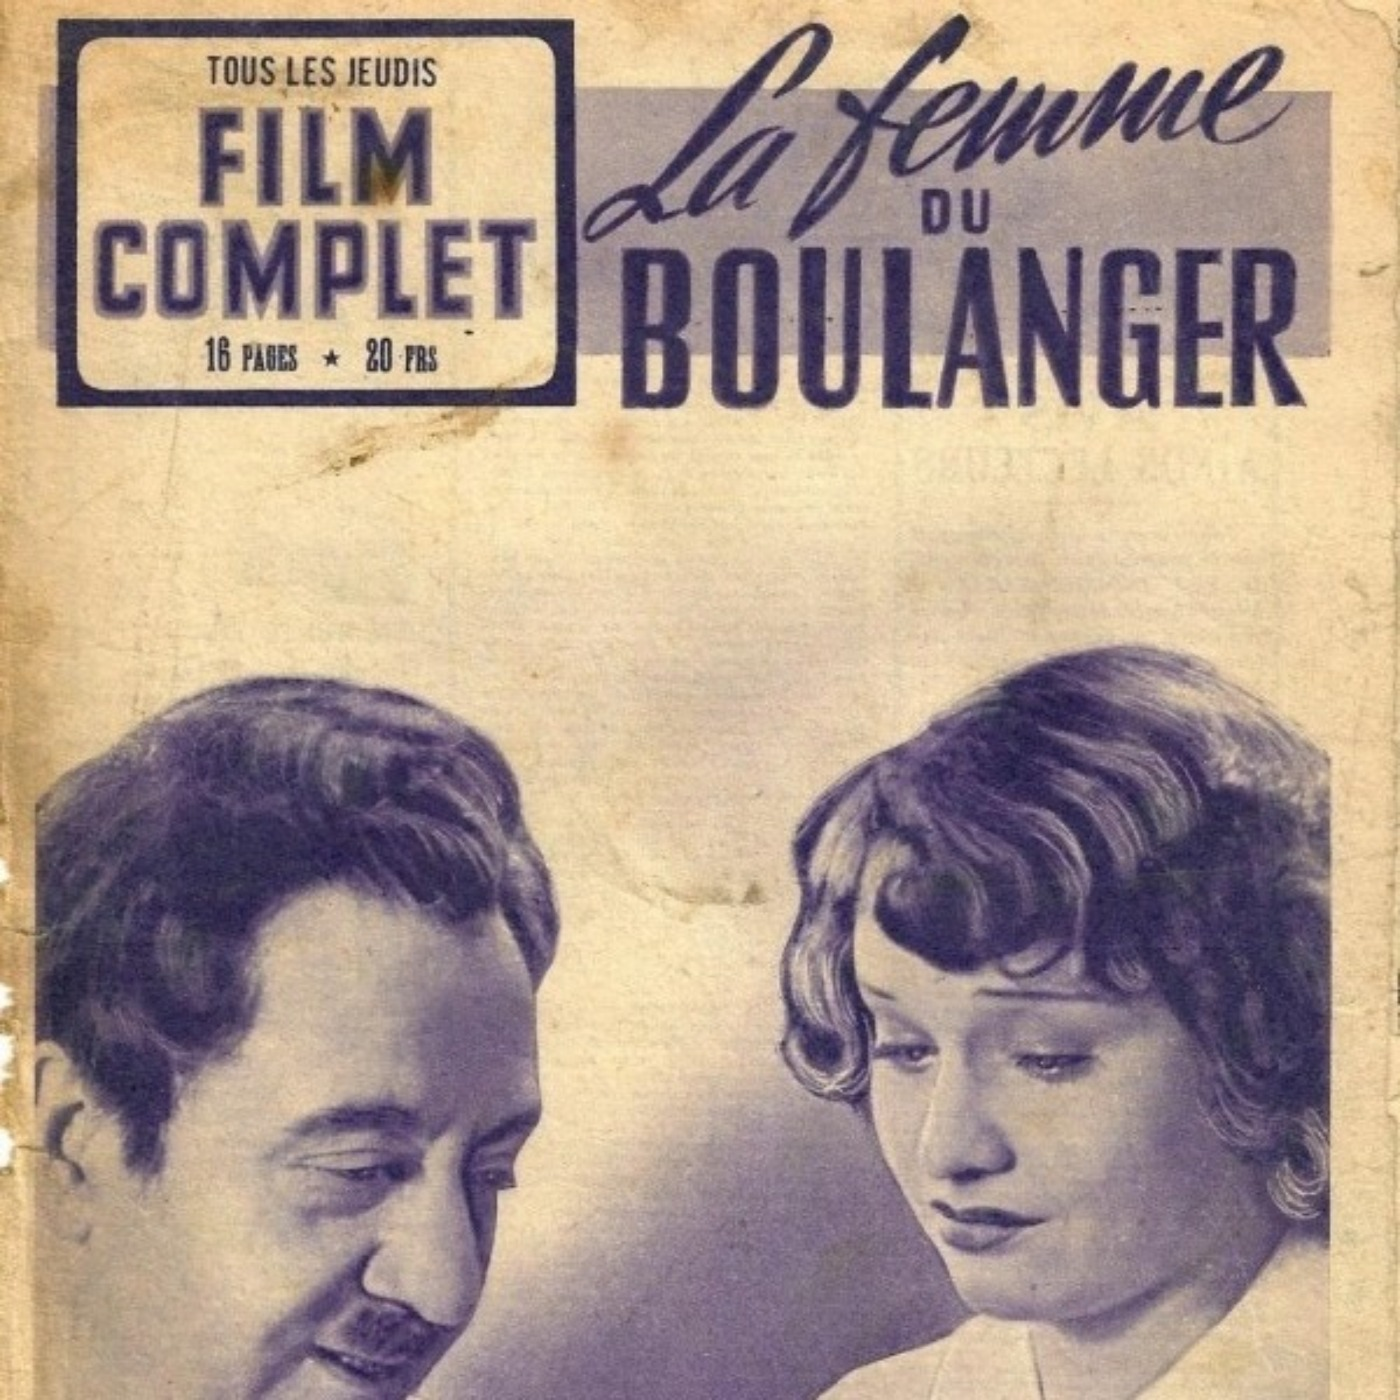 PODCAST CINEMA | critique du film LA FEMME DU BOULANGER | CinéMaRadio